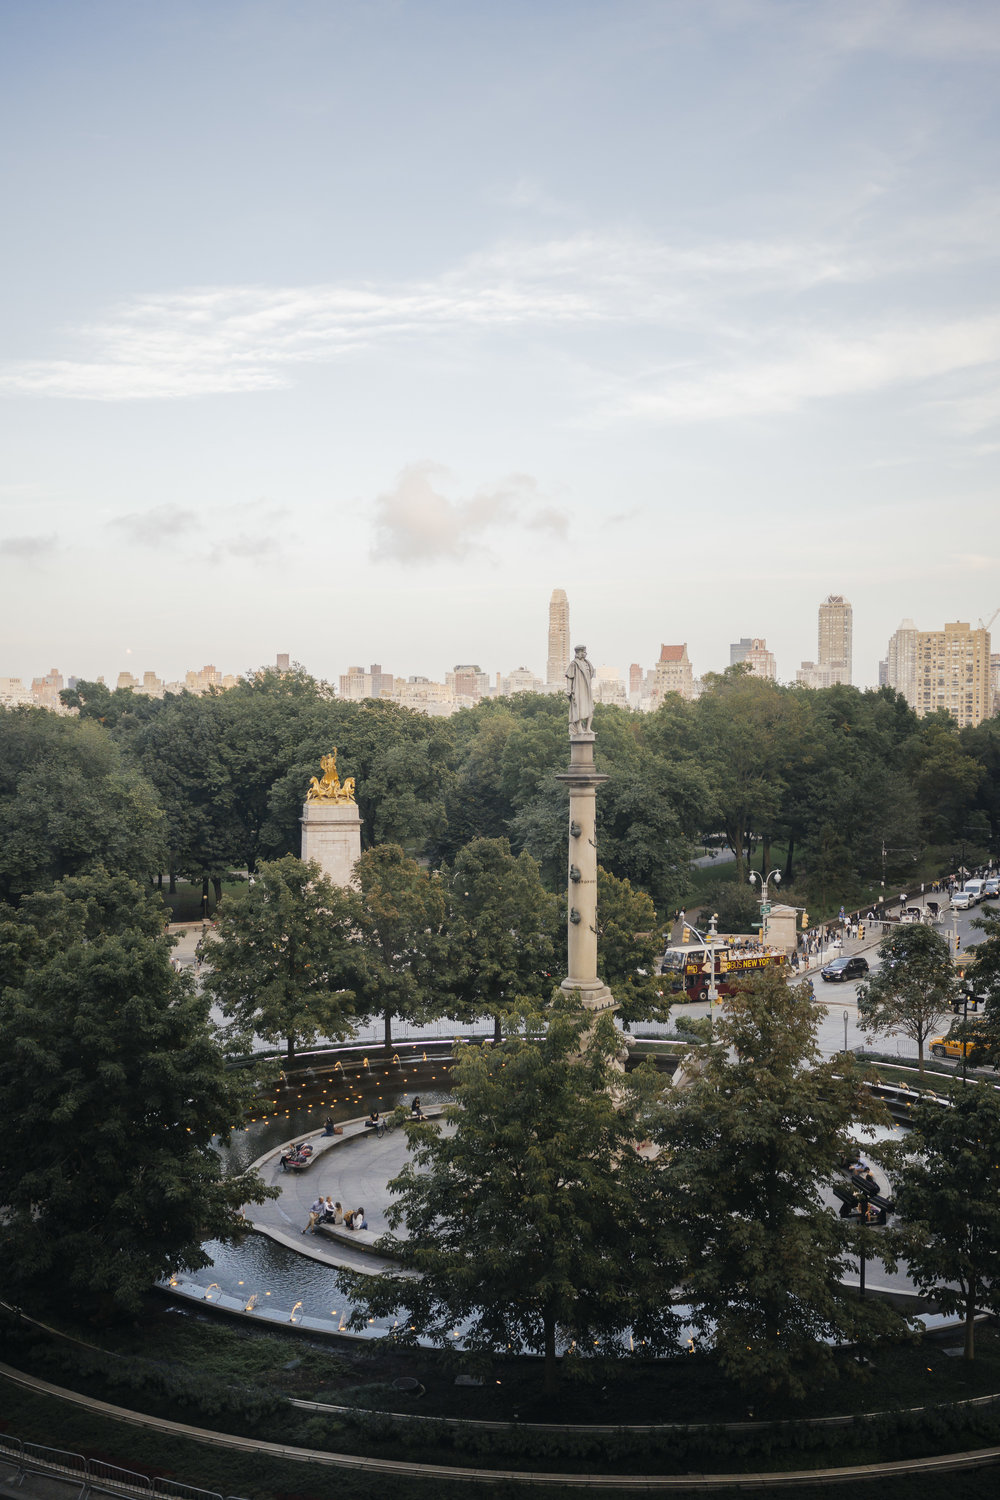 Columbus Circle, New York